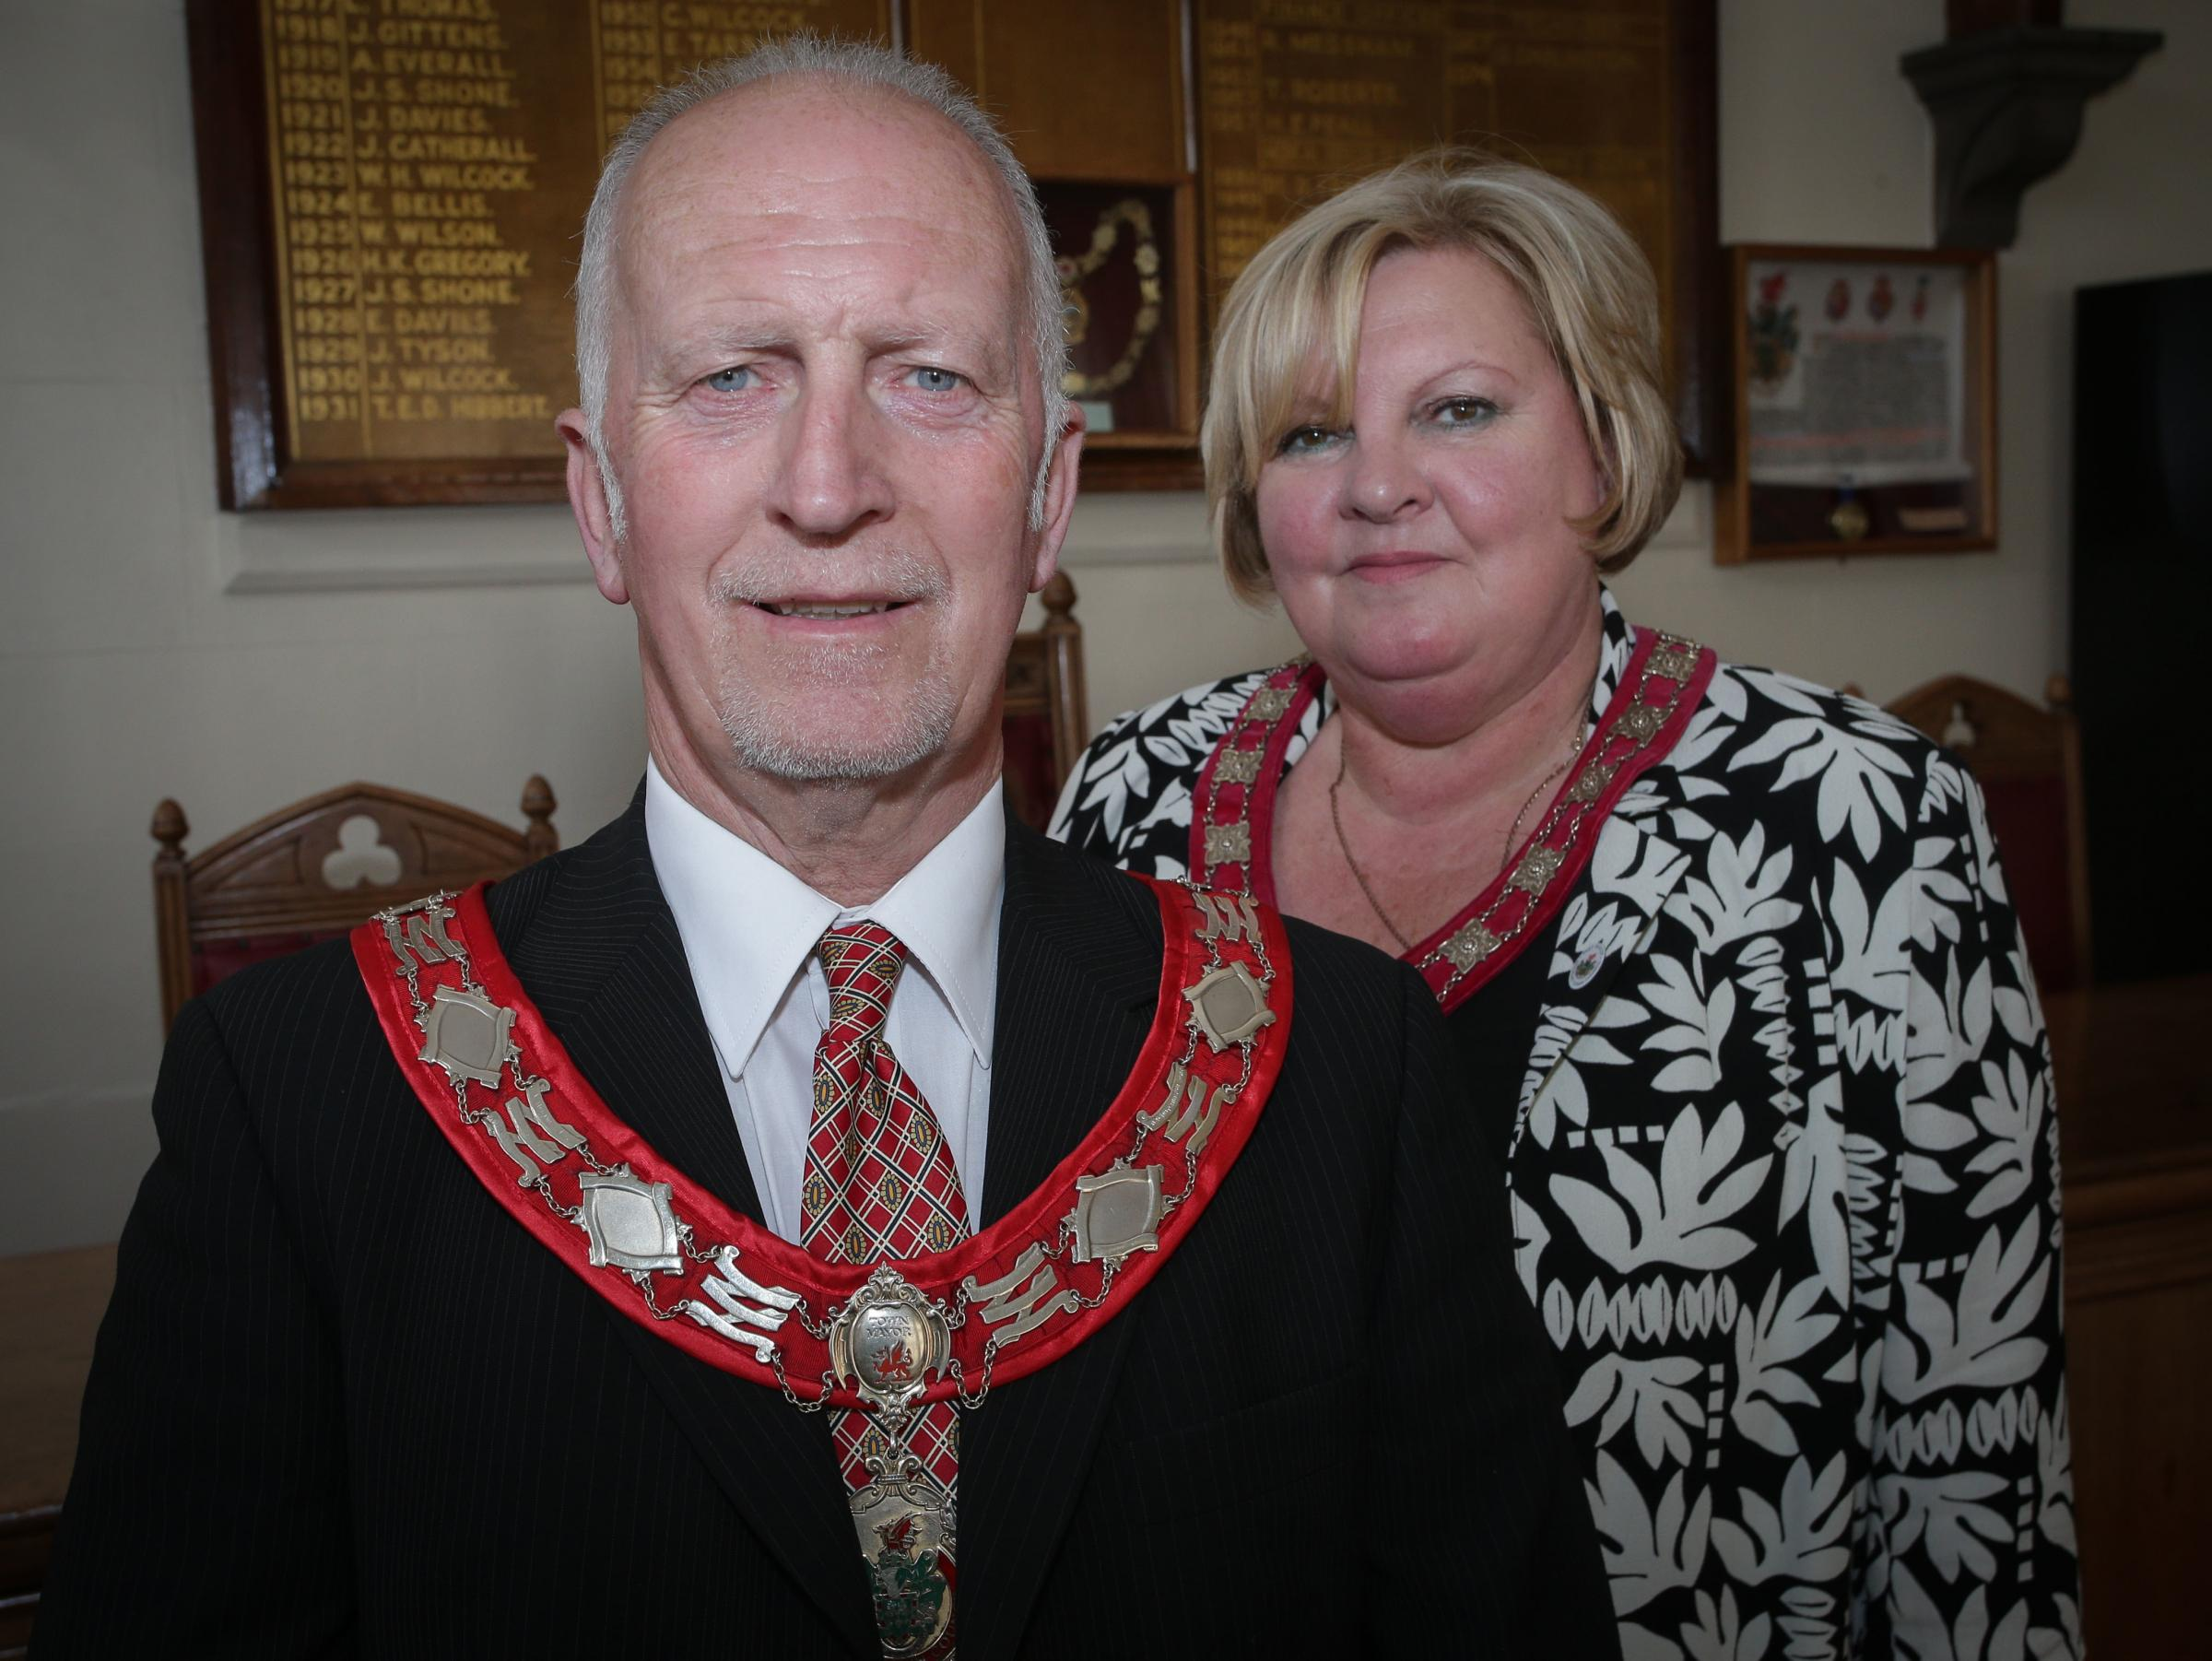 David and Carol Ellis stepped down as Buckley's Mayor and Mayoress.